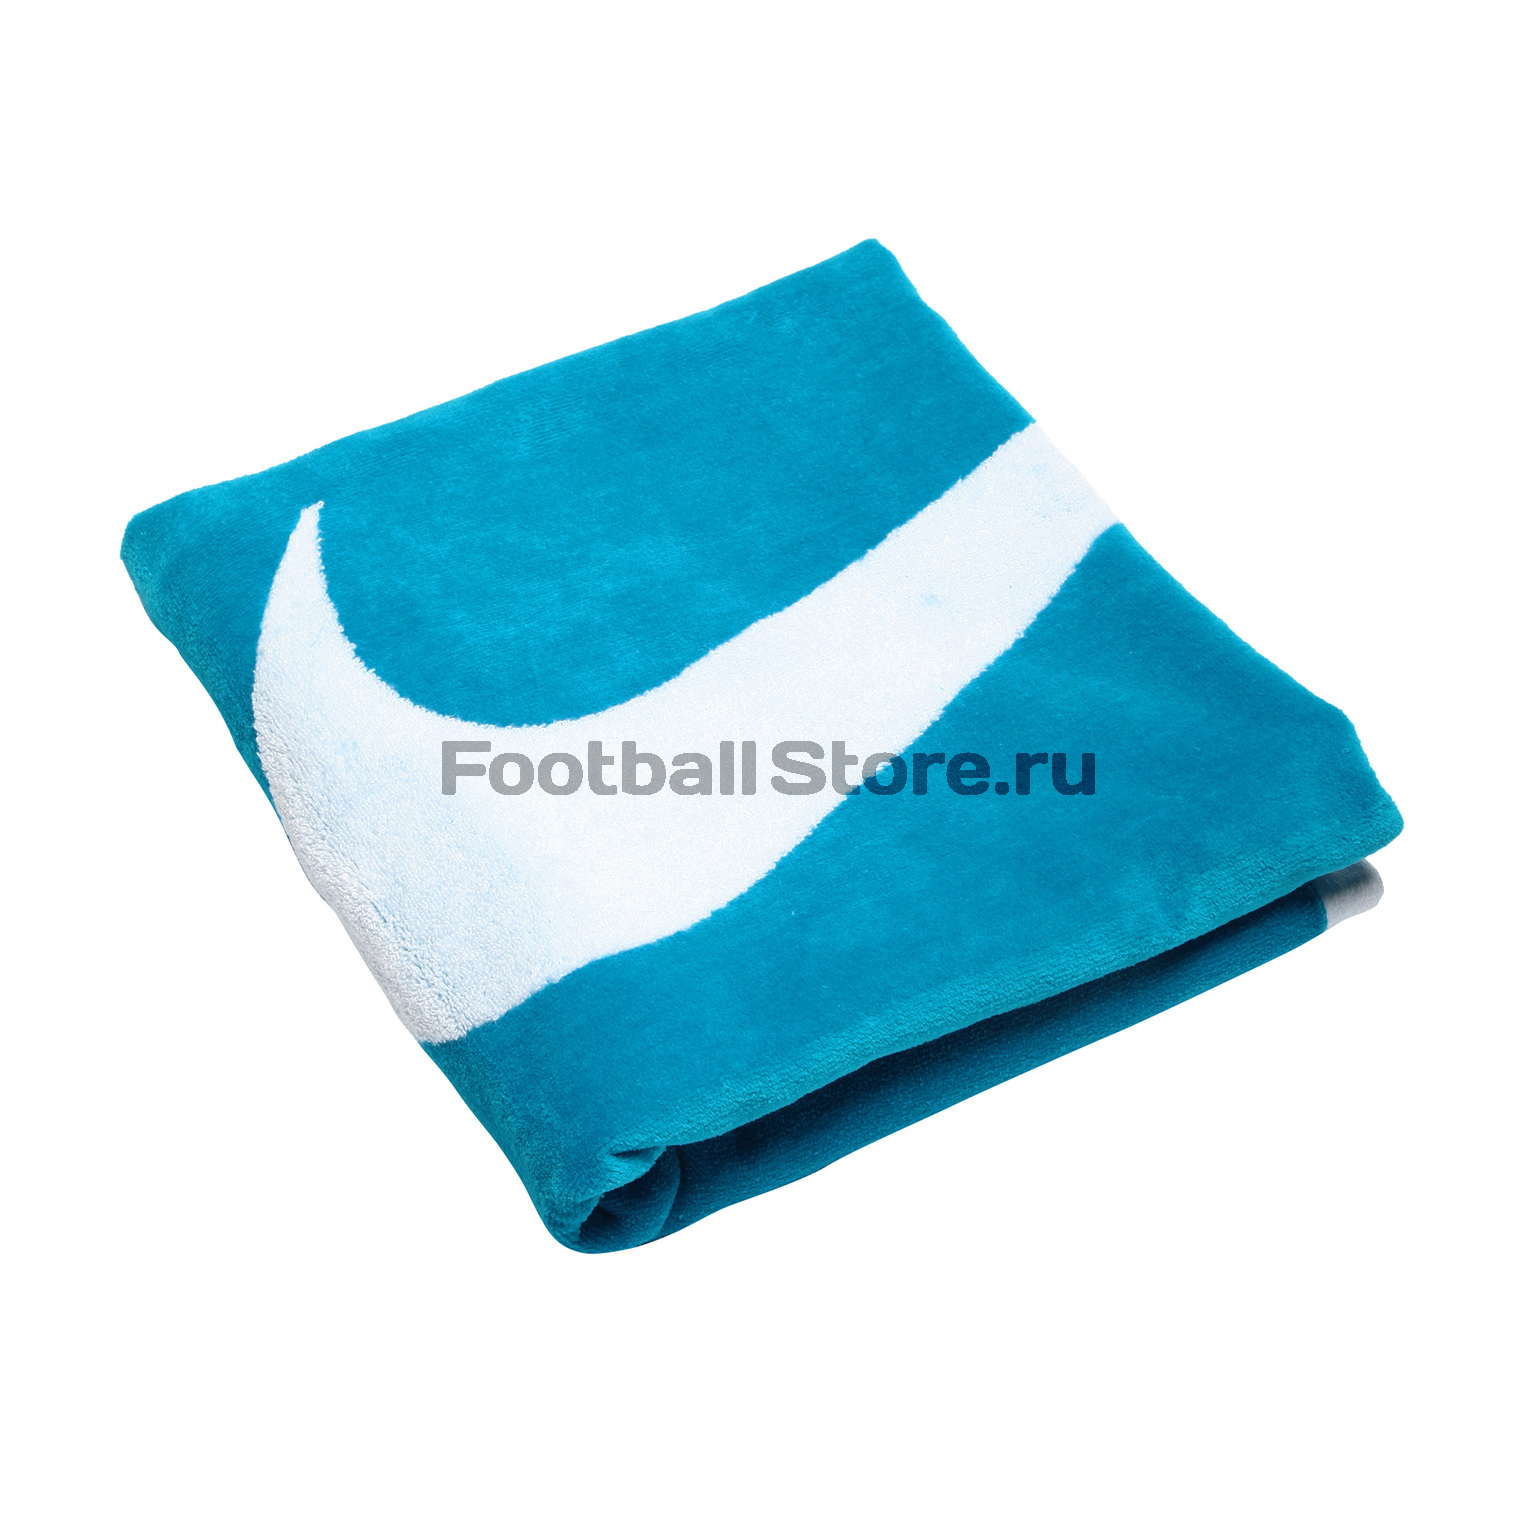 Полотенце Nike Sport Towel N.TT.01.969.LG dear father christmas